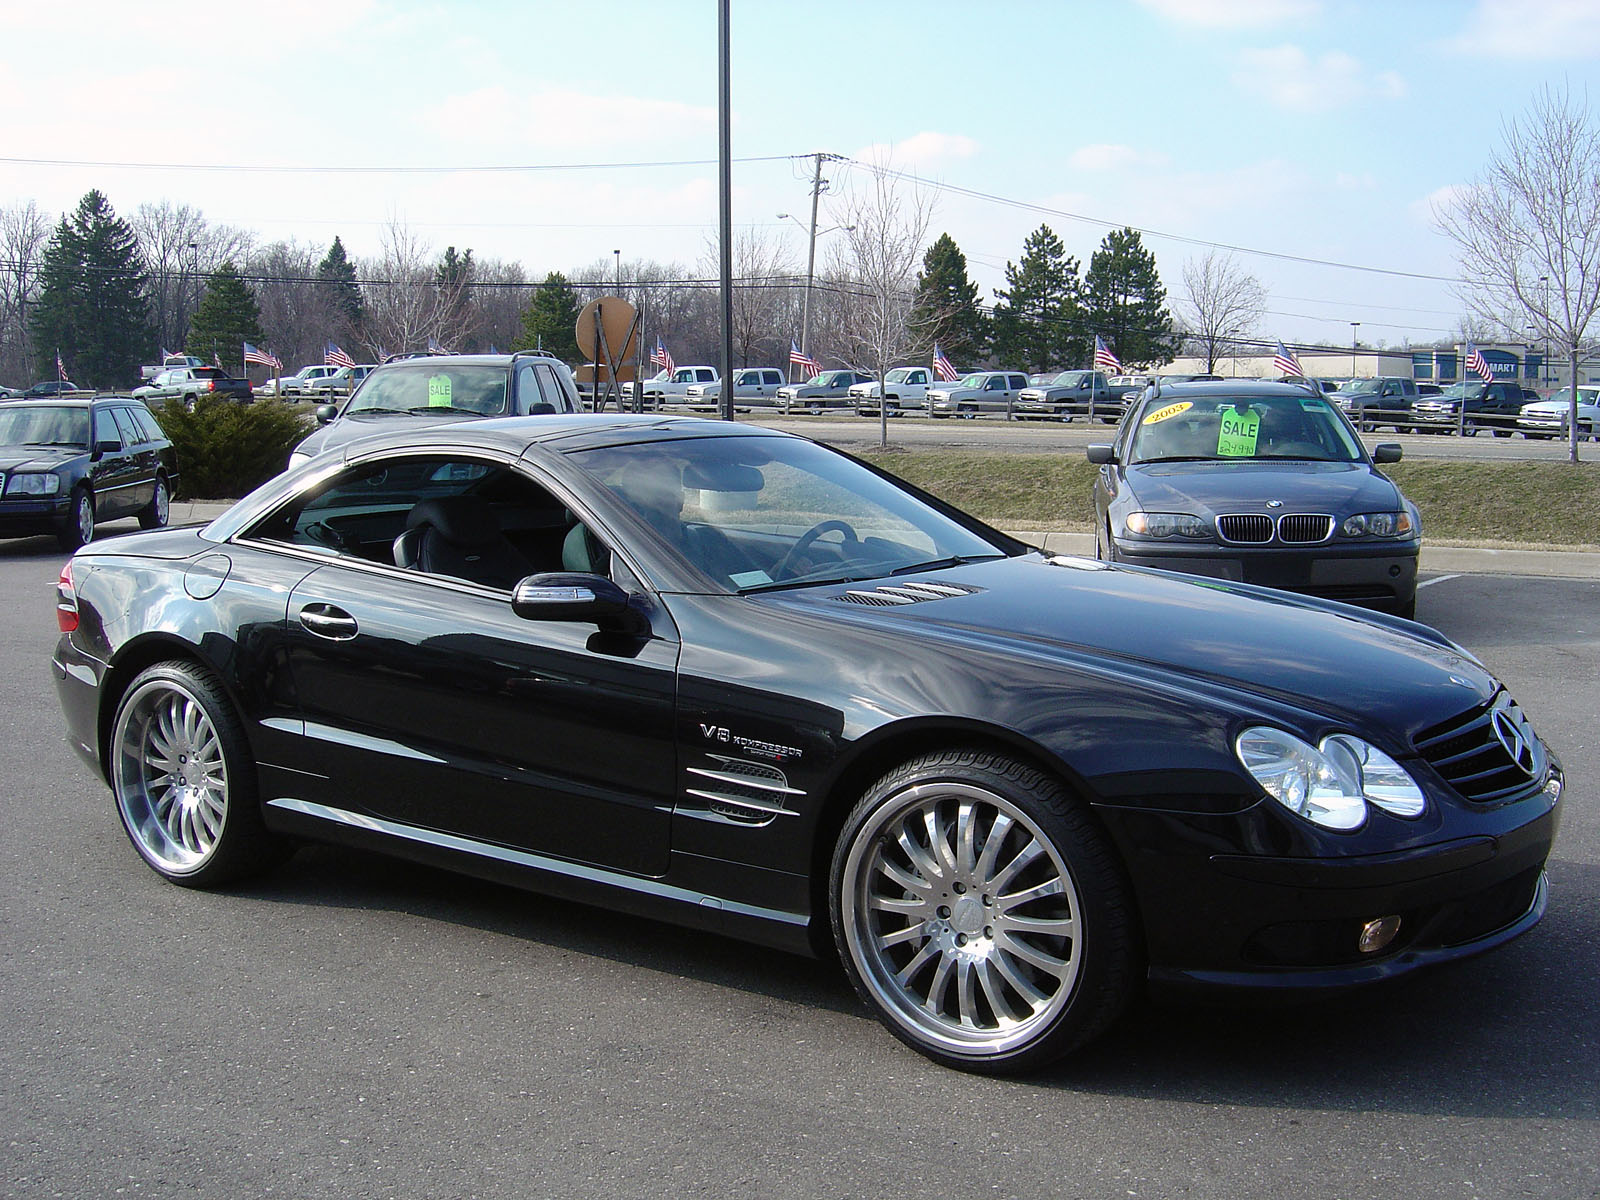 Mercedes Benz Sl 55 Amg Technical Details History Photos